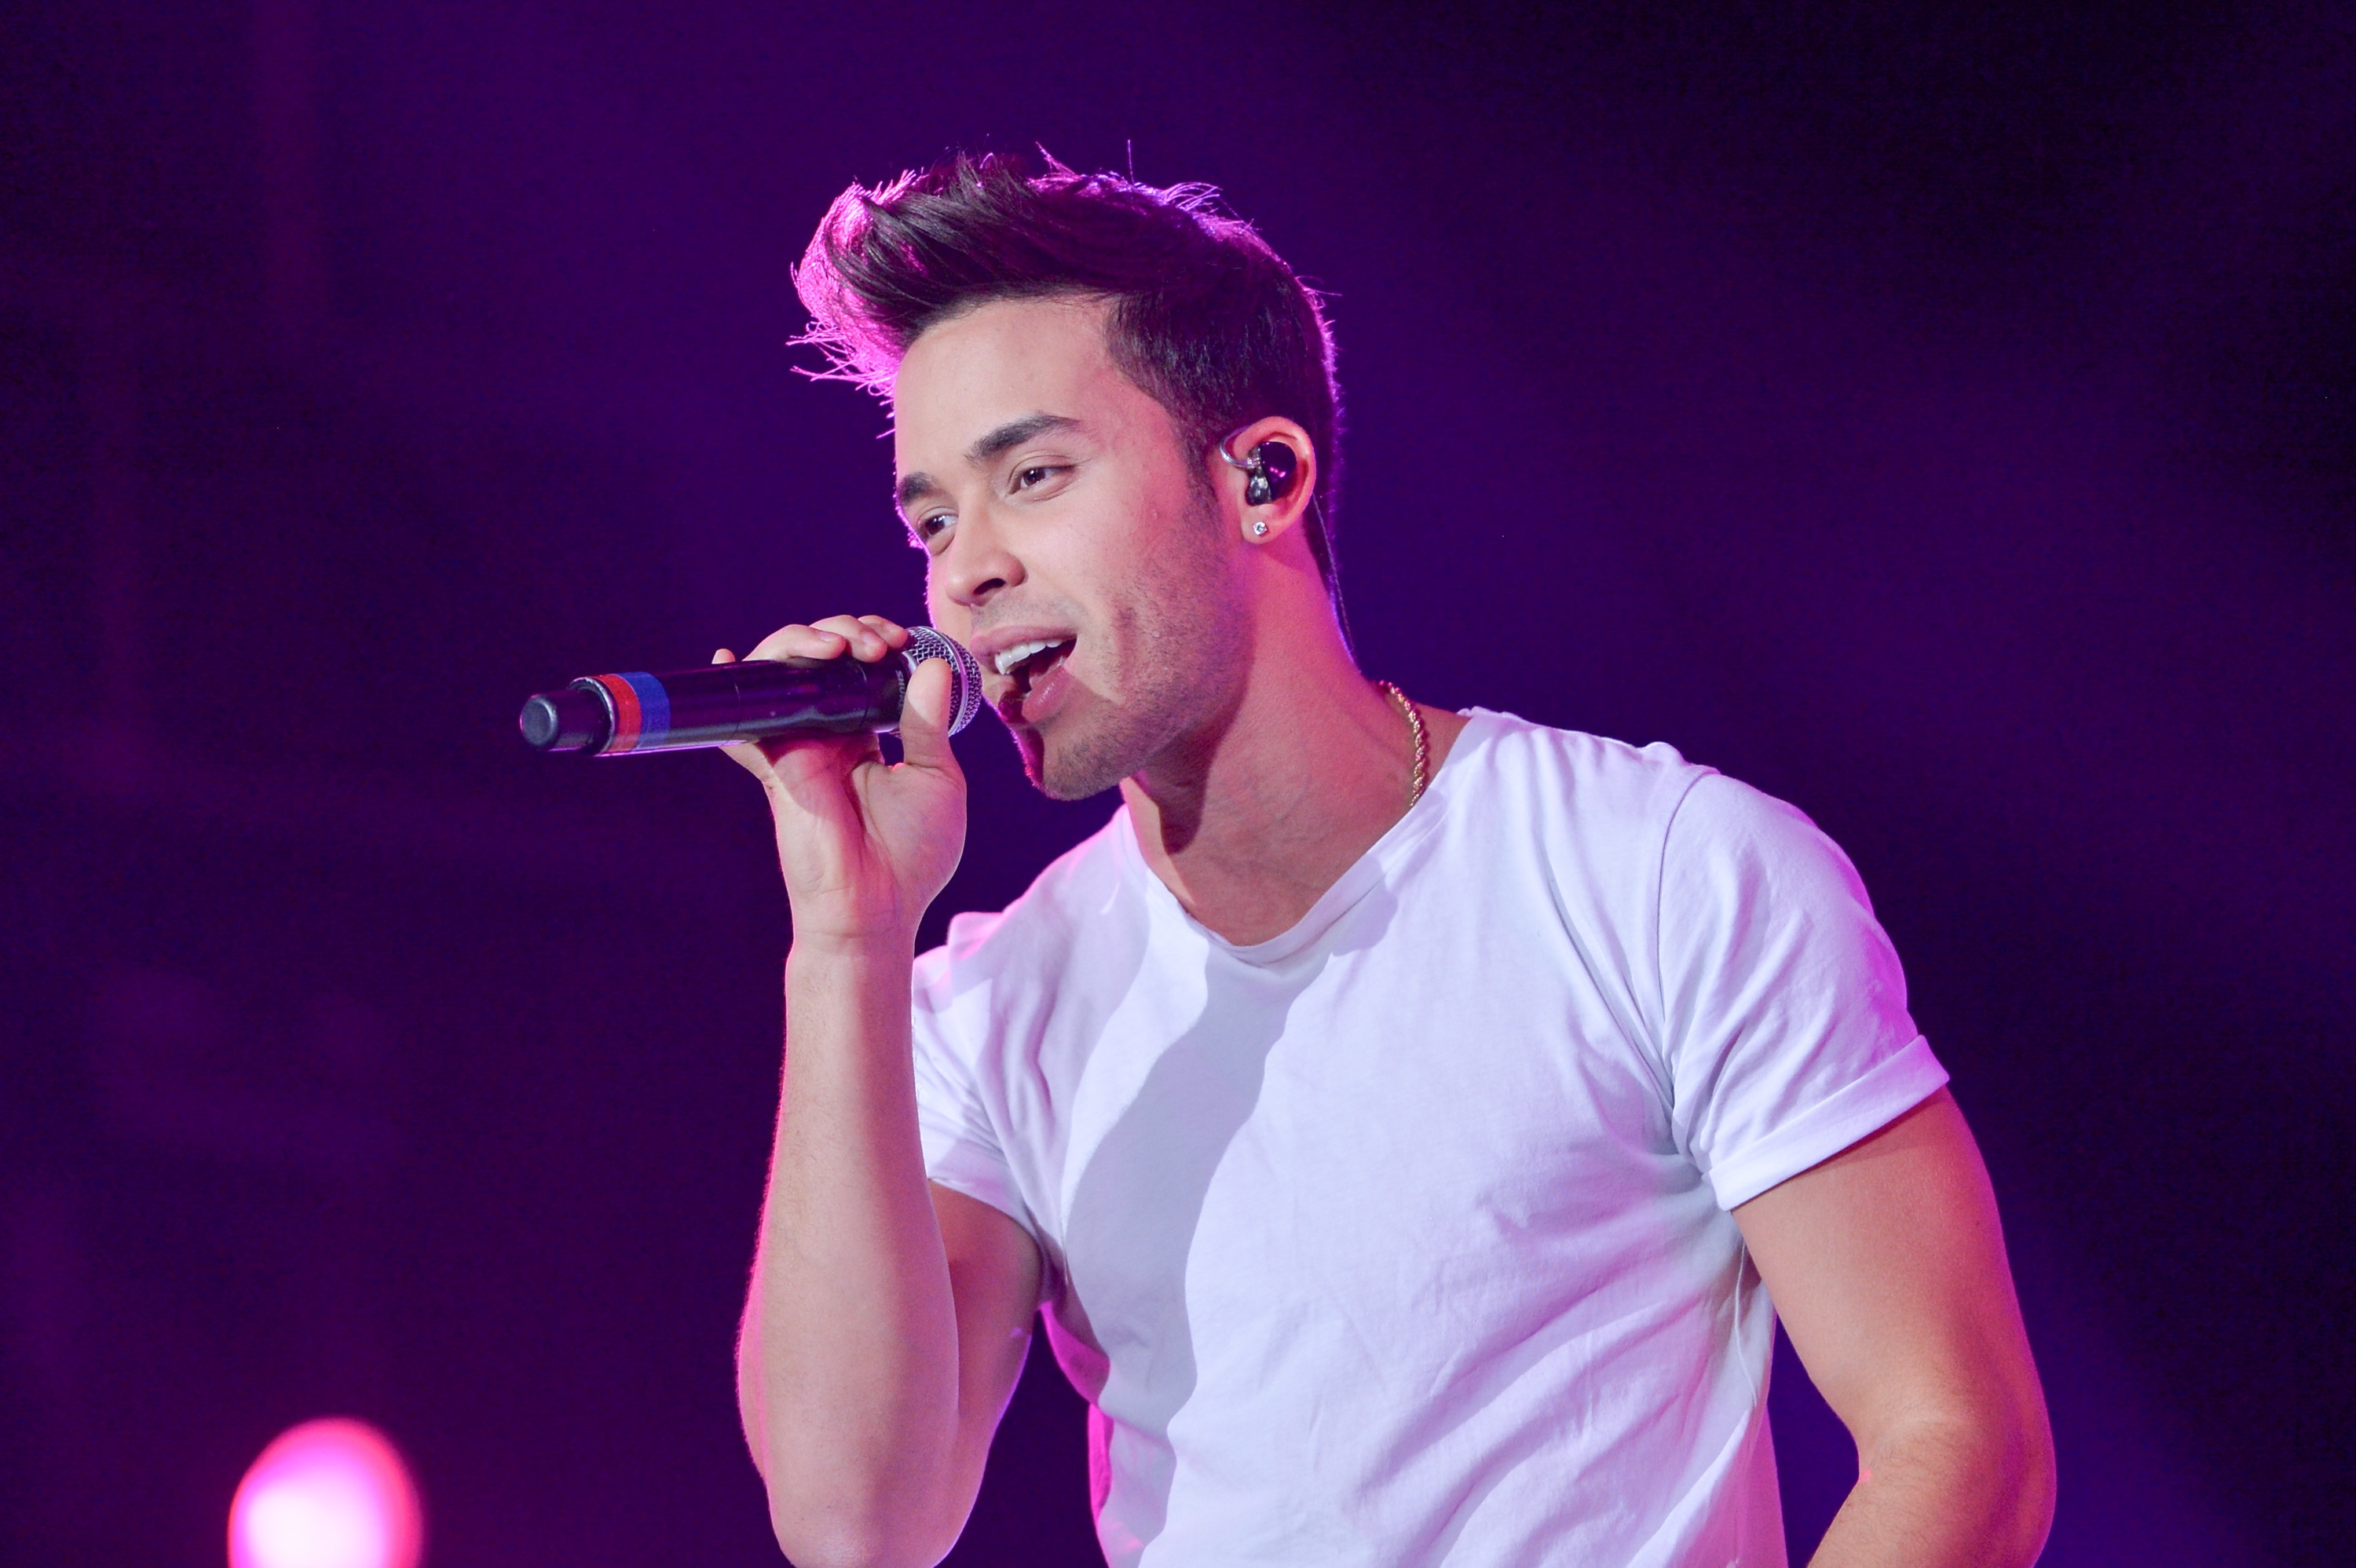 Prince Royce Wallpapers Images Photos Pictures Backgrounds